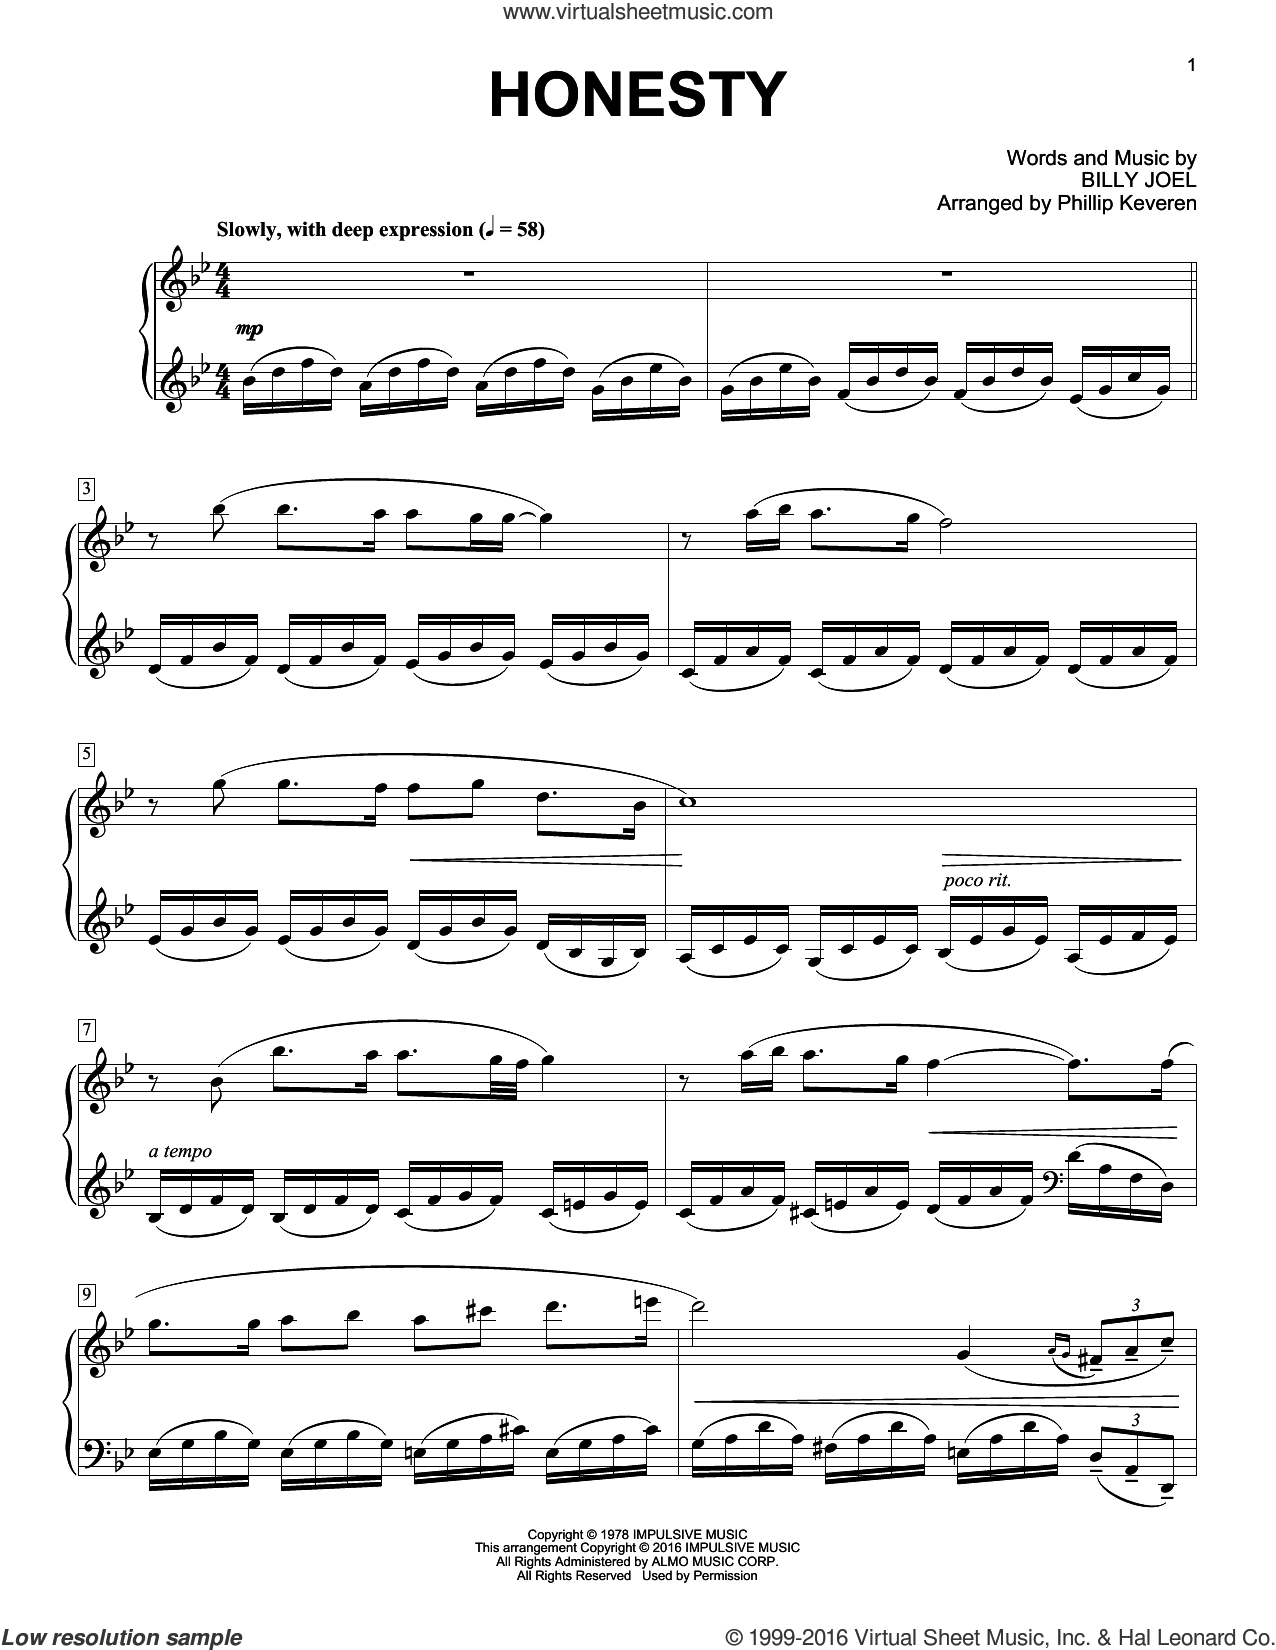 Honesty [Classical version] (arr. Phillip Keveren) sheet music for piano solo by Phillip Keveren, Billy Joel and Billy Joel (Arr. Phillip Keveren), intermediate skill level